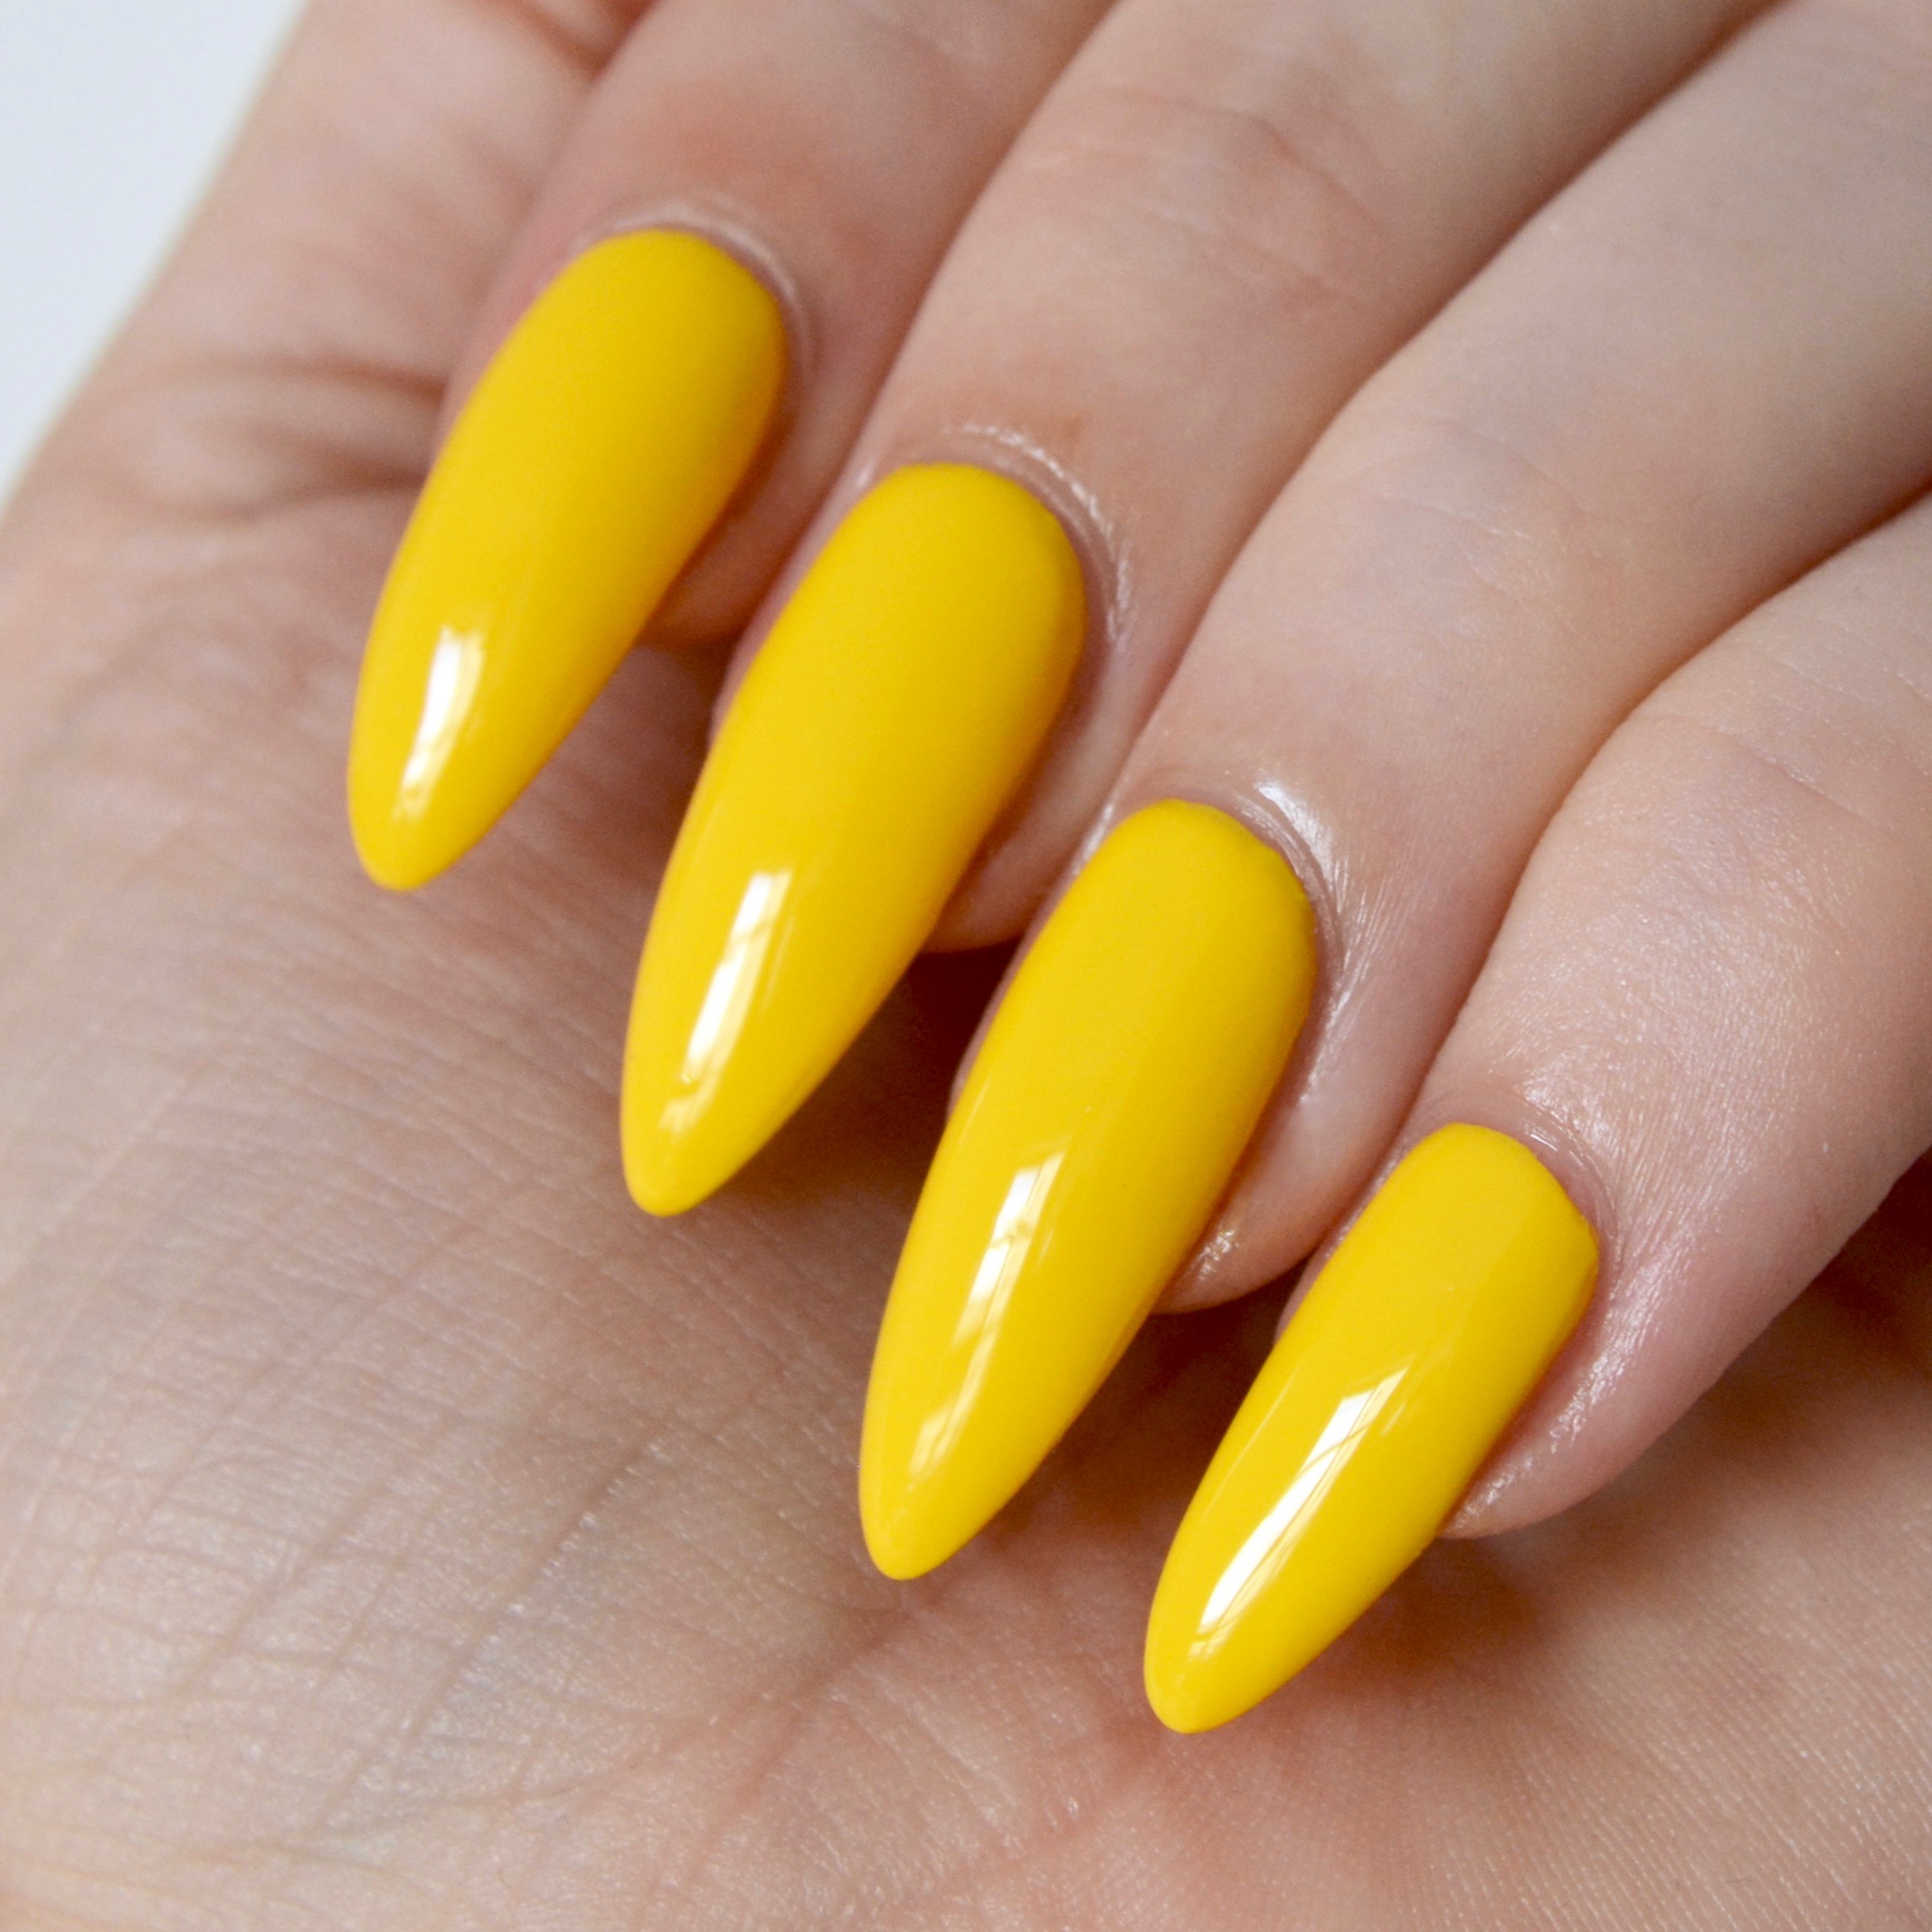 jessica-prime-collection-yellow-swatches - talonted lex